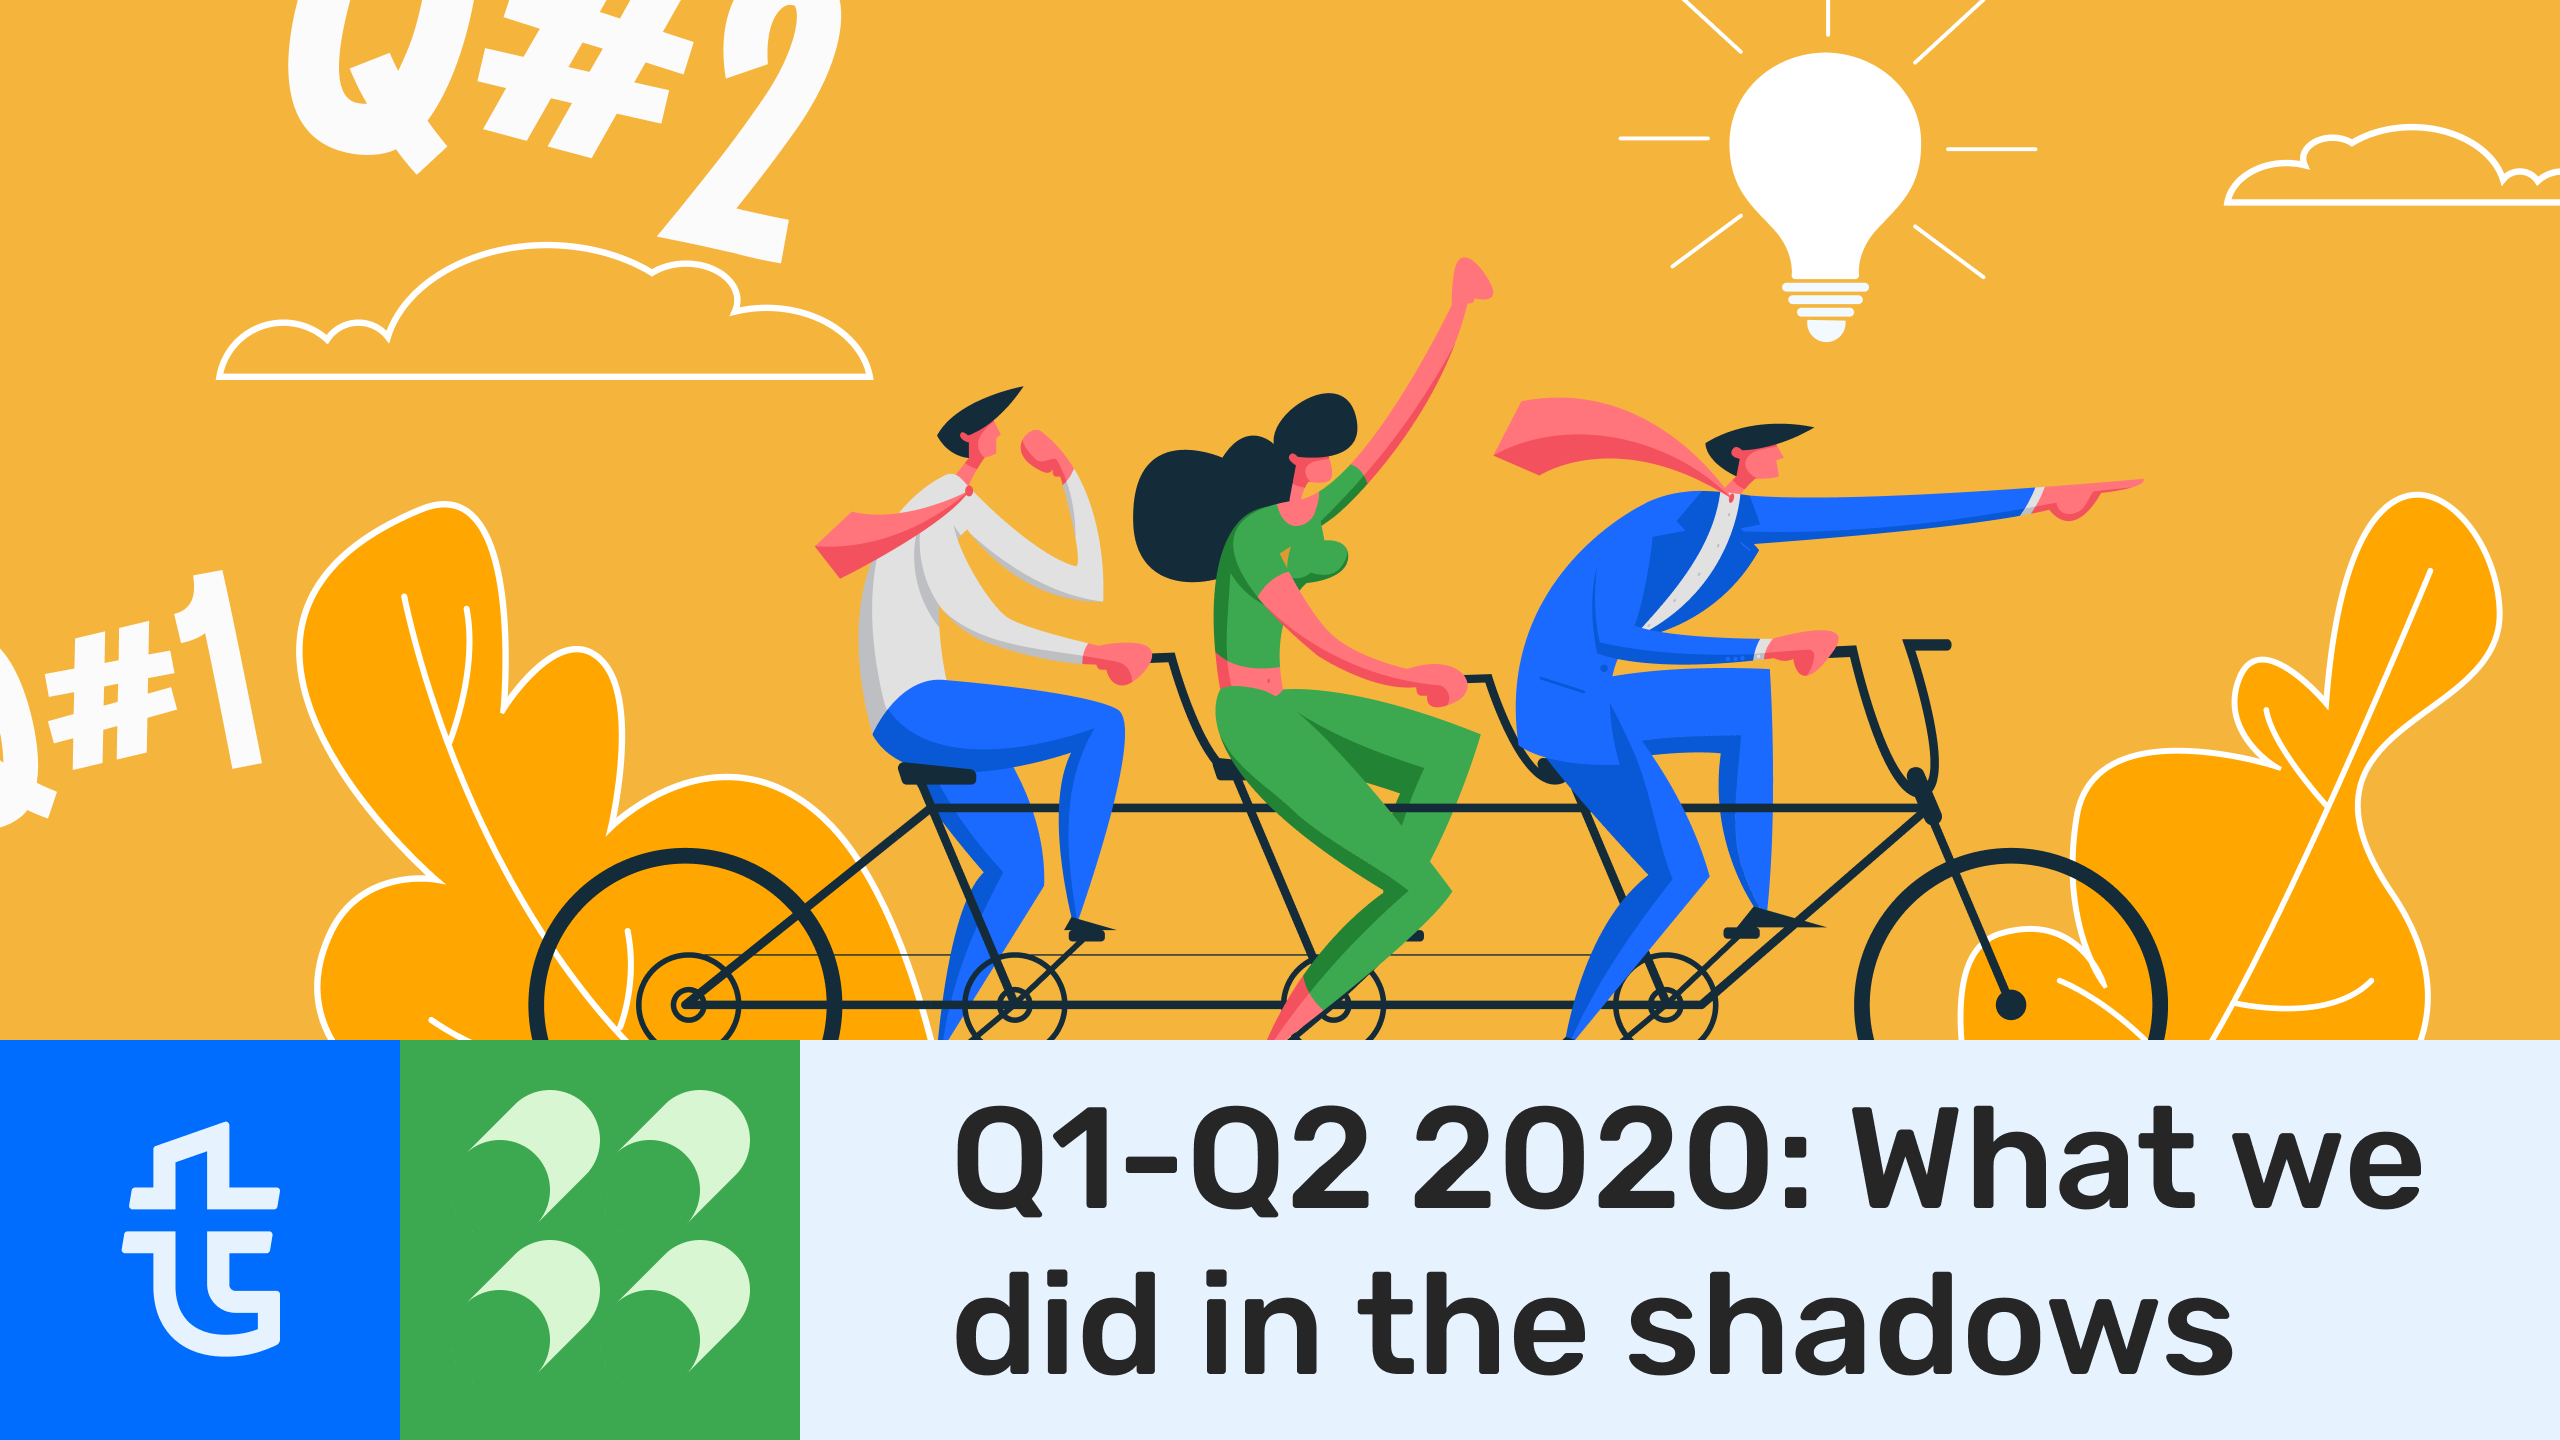 Q1-Q2 2020: What we did in the shadows